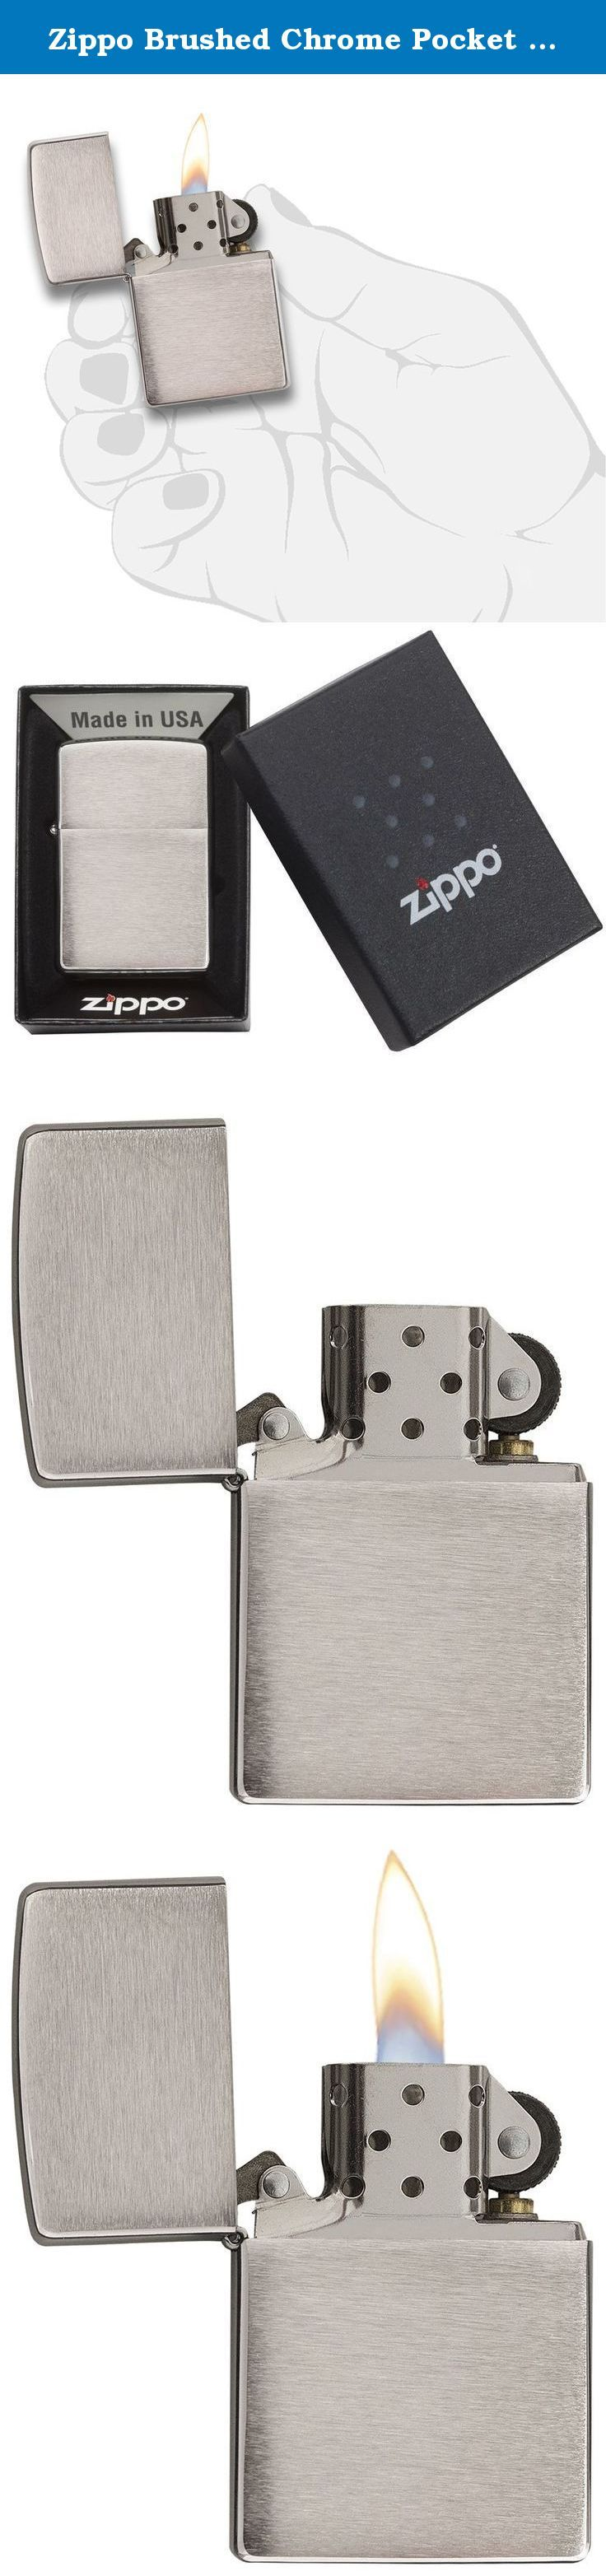 Zippo Brushed Chrome Pocket Lighter. Zippo classic brushed Chrome lighter is suitable for gift giving in its gift box and comes with a lifetime guarantee. For optimum performance, fill with Zippo premium lighter fluid.